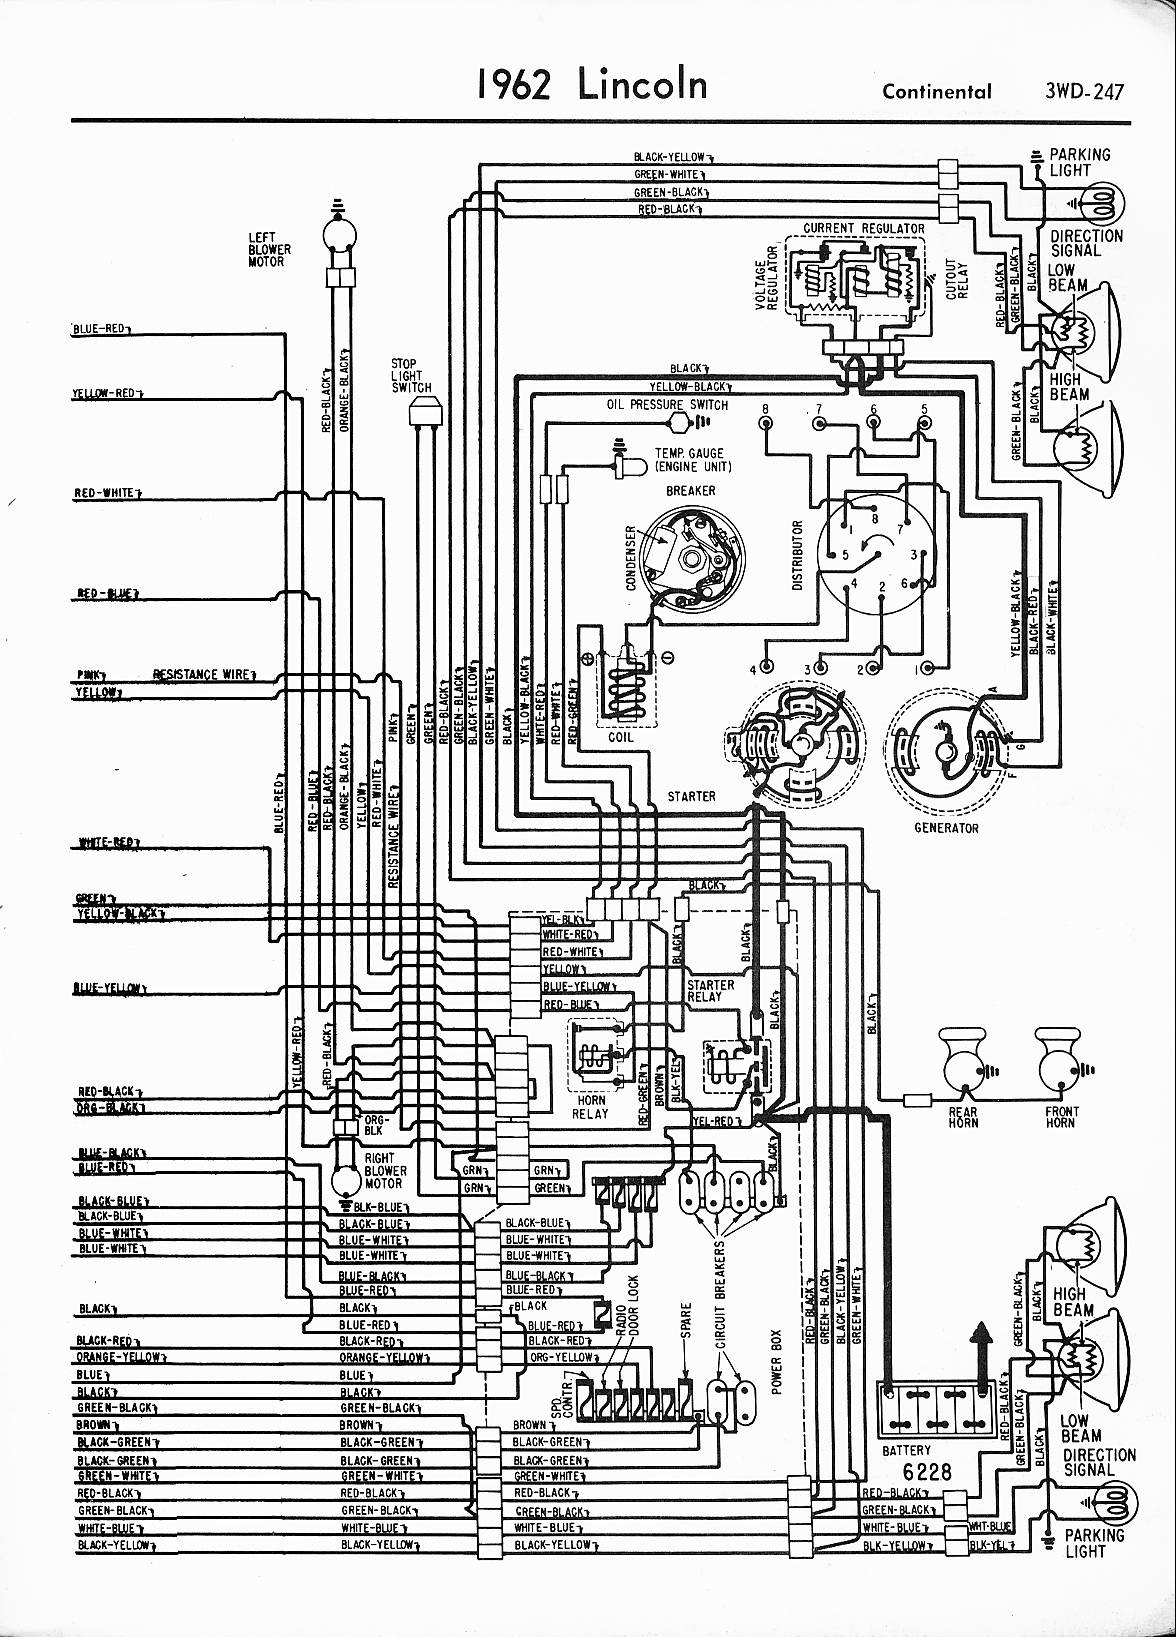 1969 lincoln continental wiring diagram data wiring diagrams u2022 rh naopak co 1969 Lincoln Continental Radiator Cover 1998 Lincoln Continental Transmission Sensor